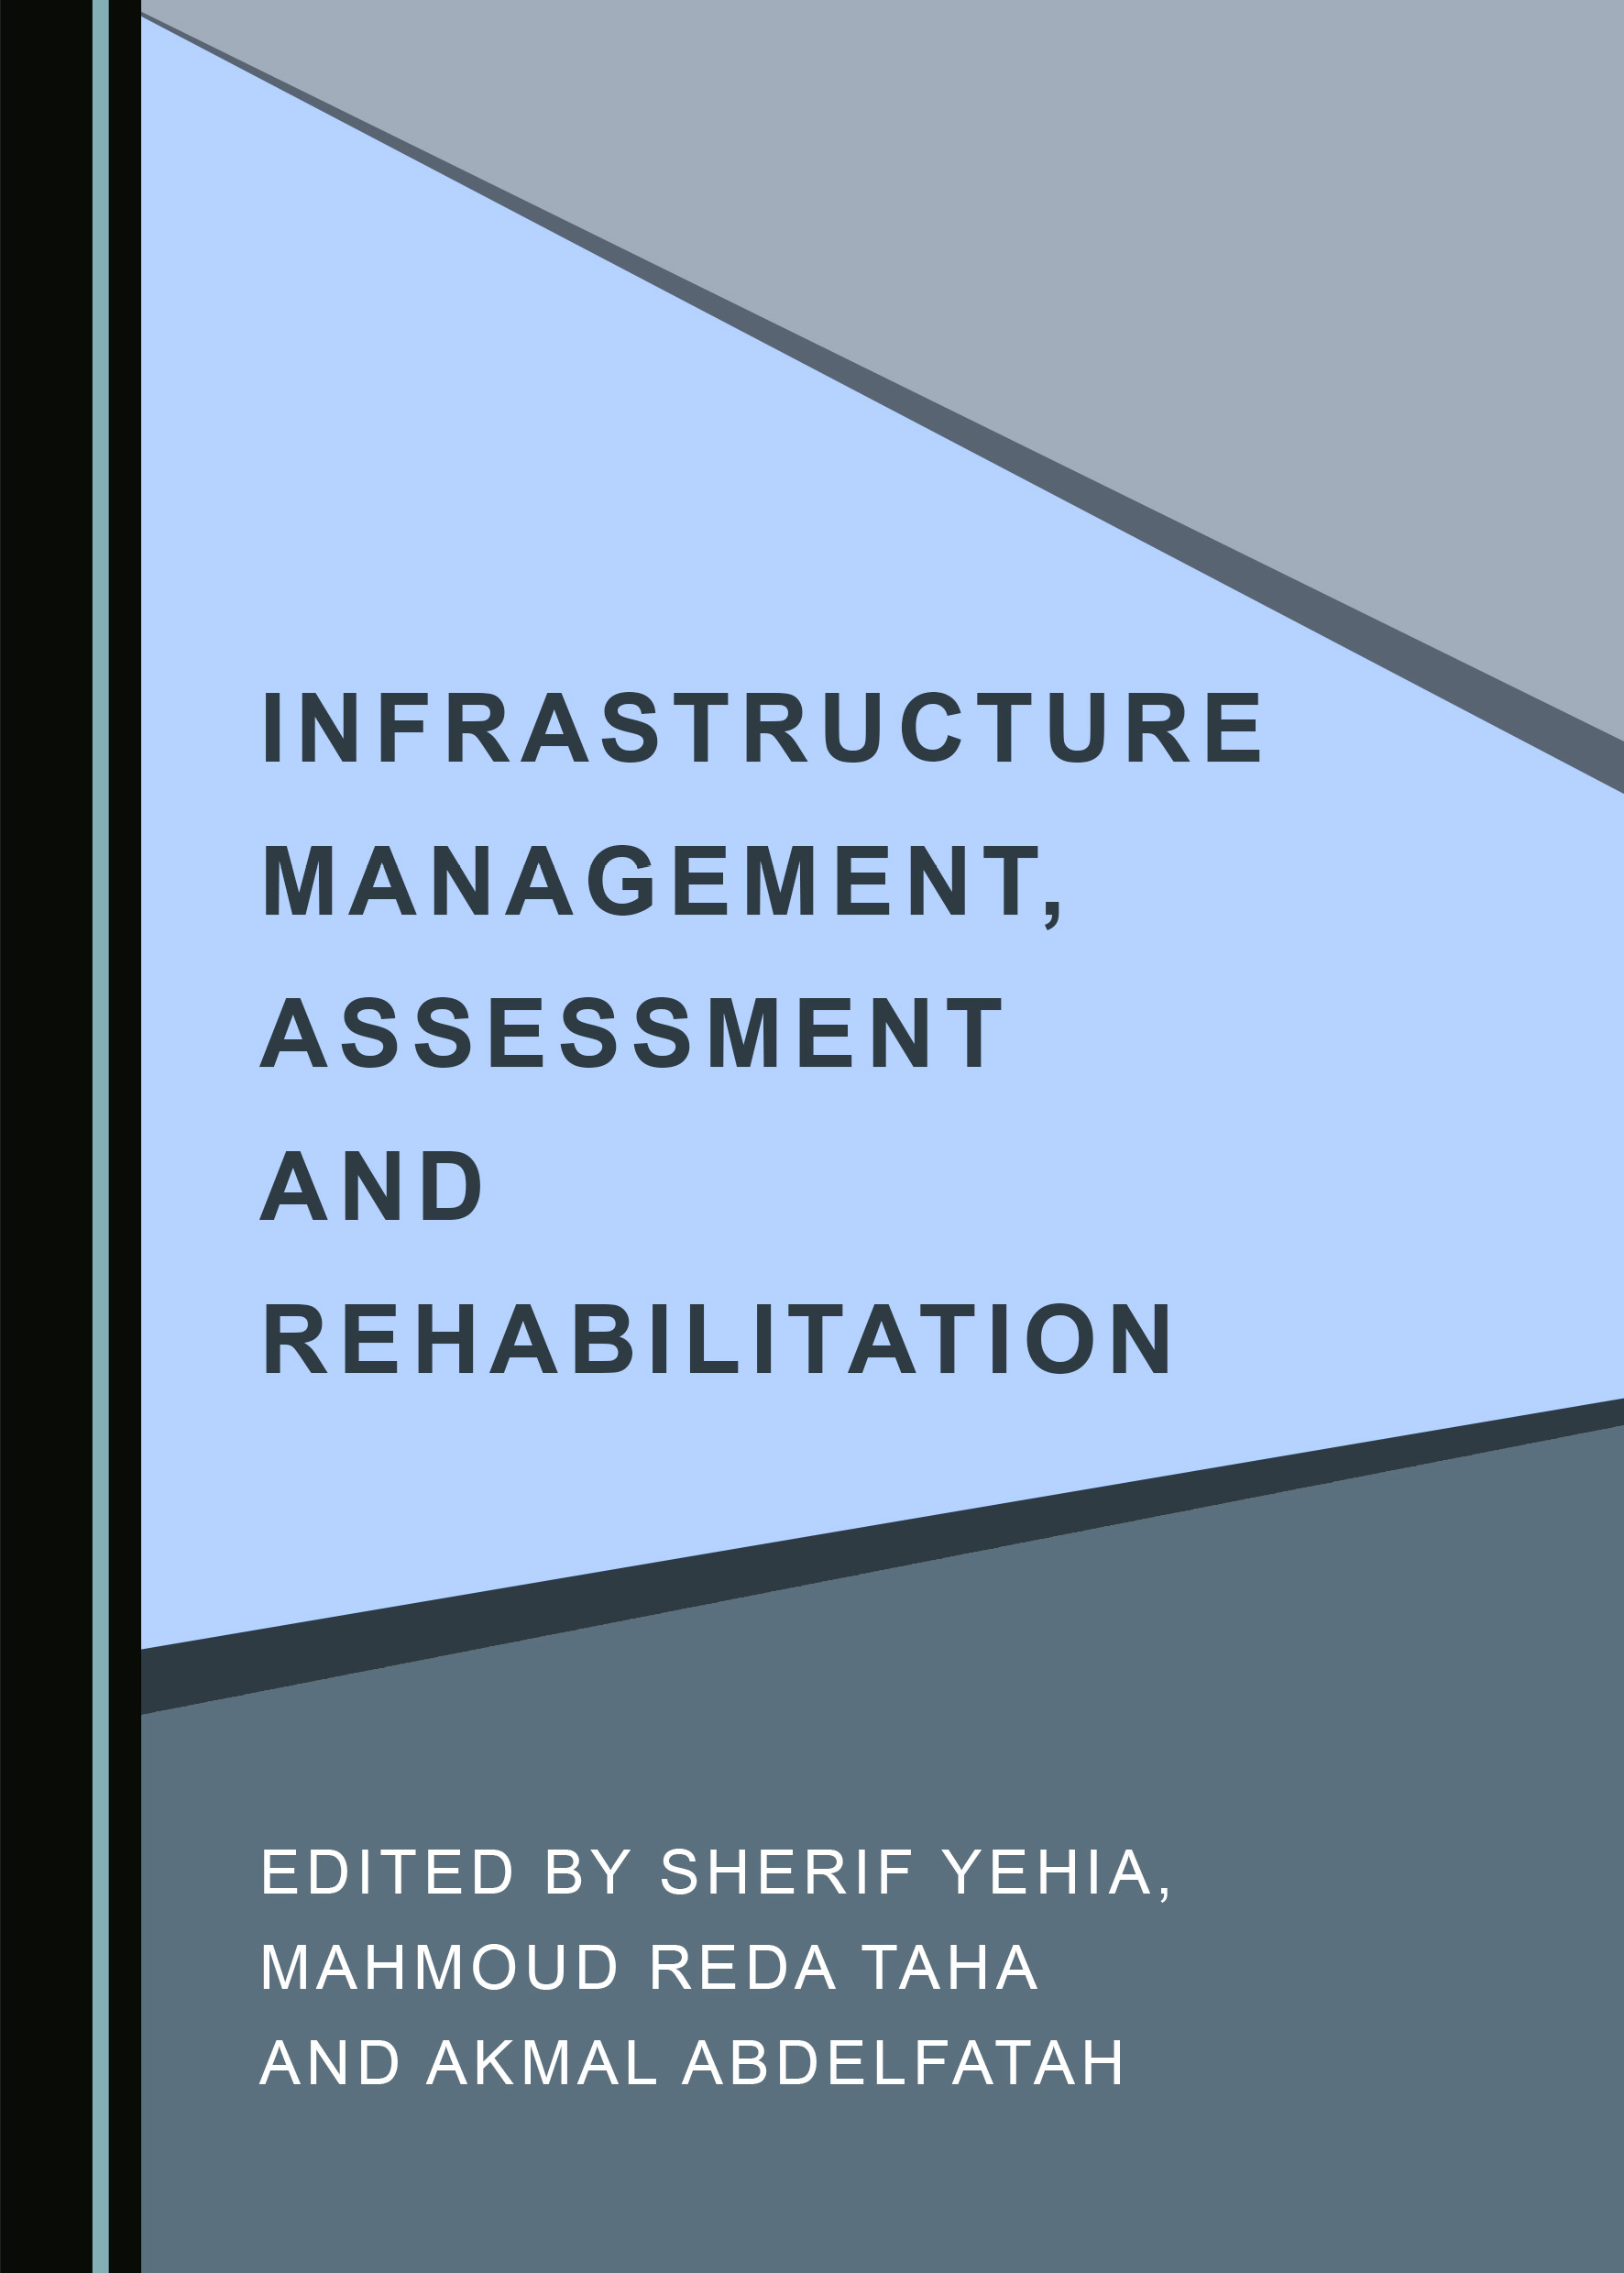 Infrastructure Management, Assessment and Rehabilitation